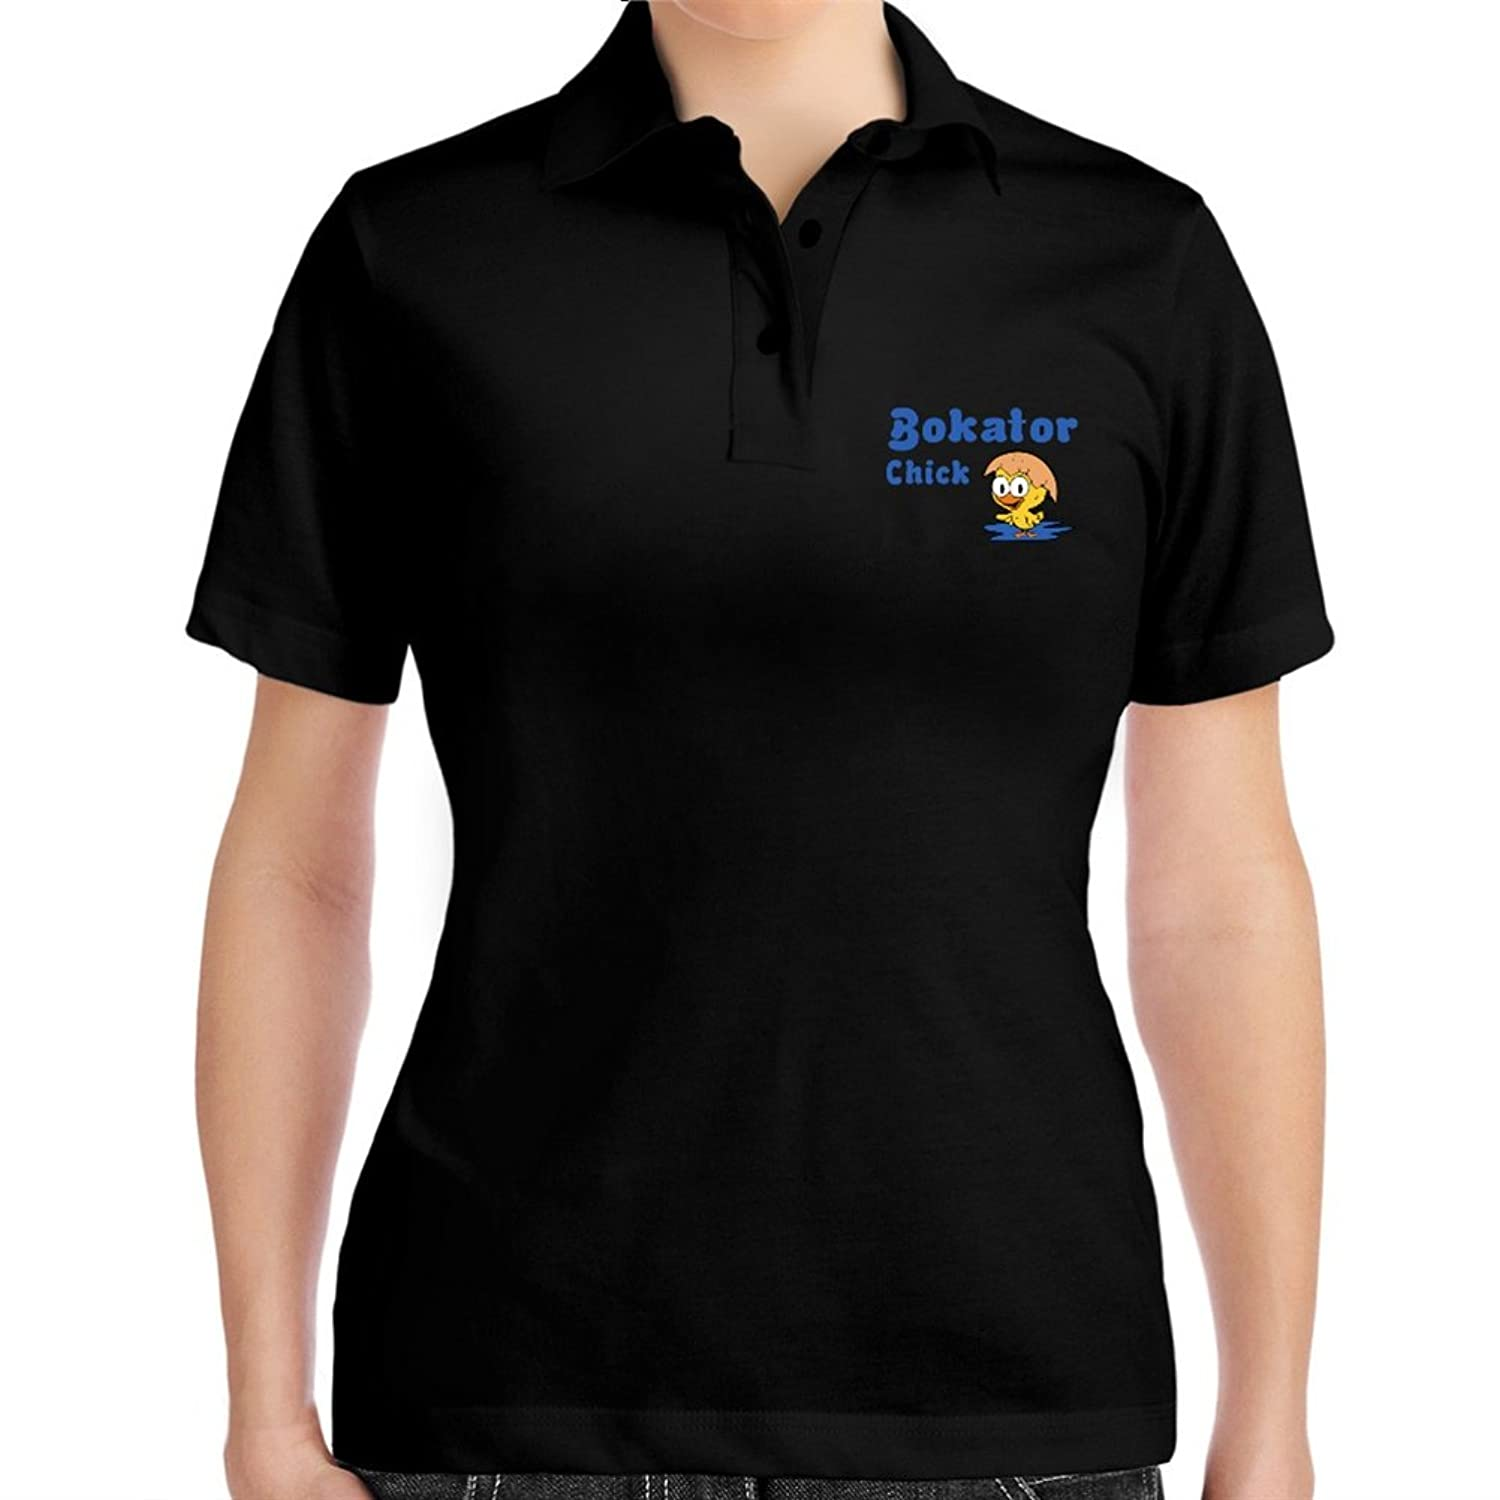 Bokator chick Women Polo Shirt